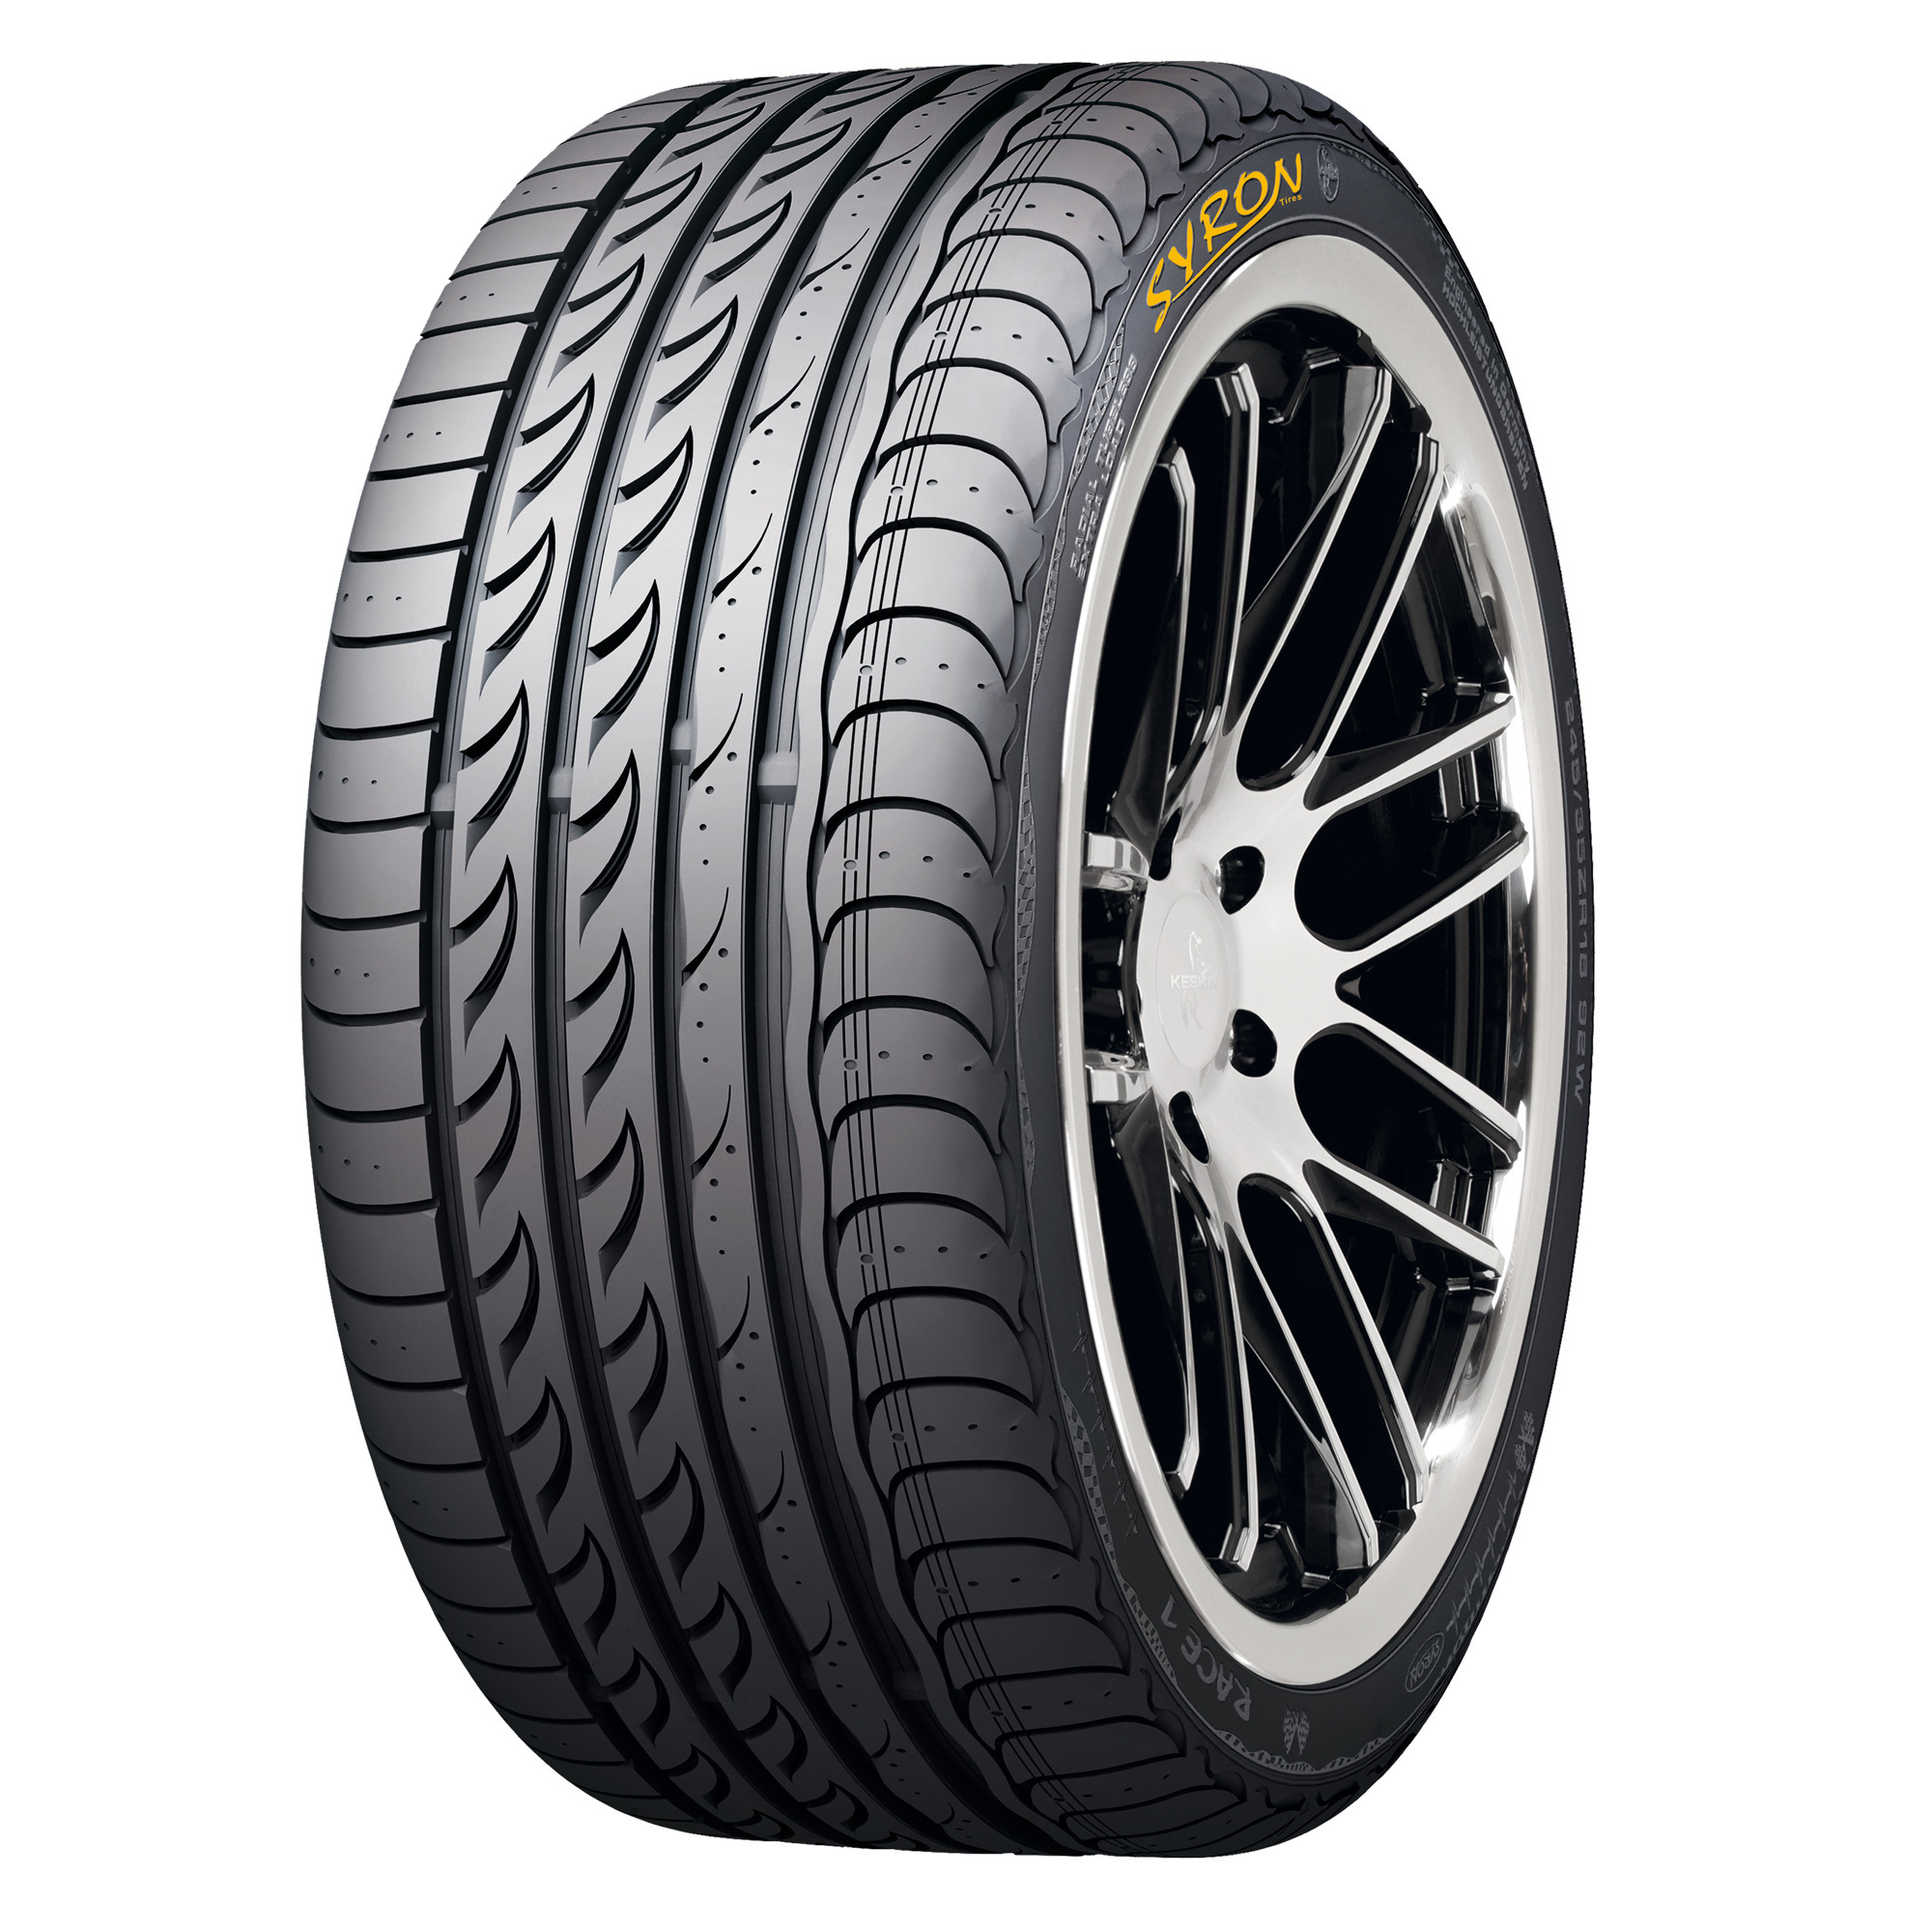 235/30R20 SYRON TIRES RACE1 plus 88W XL